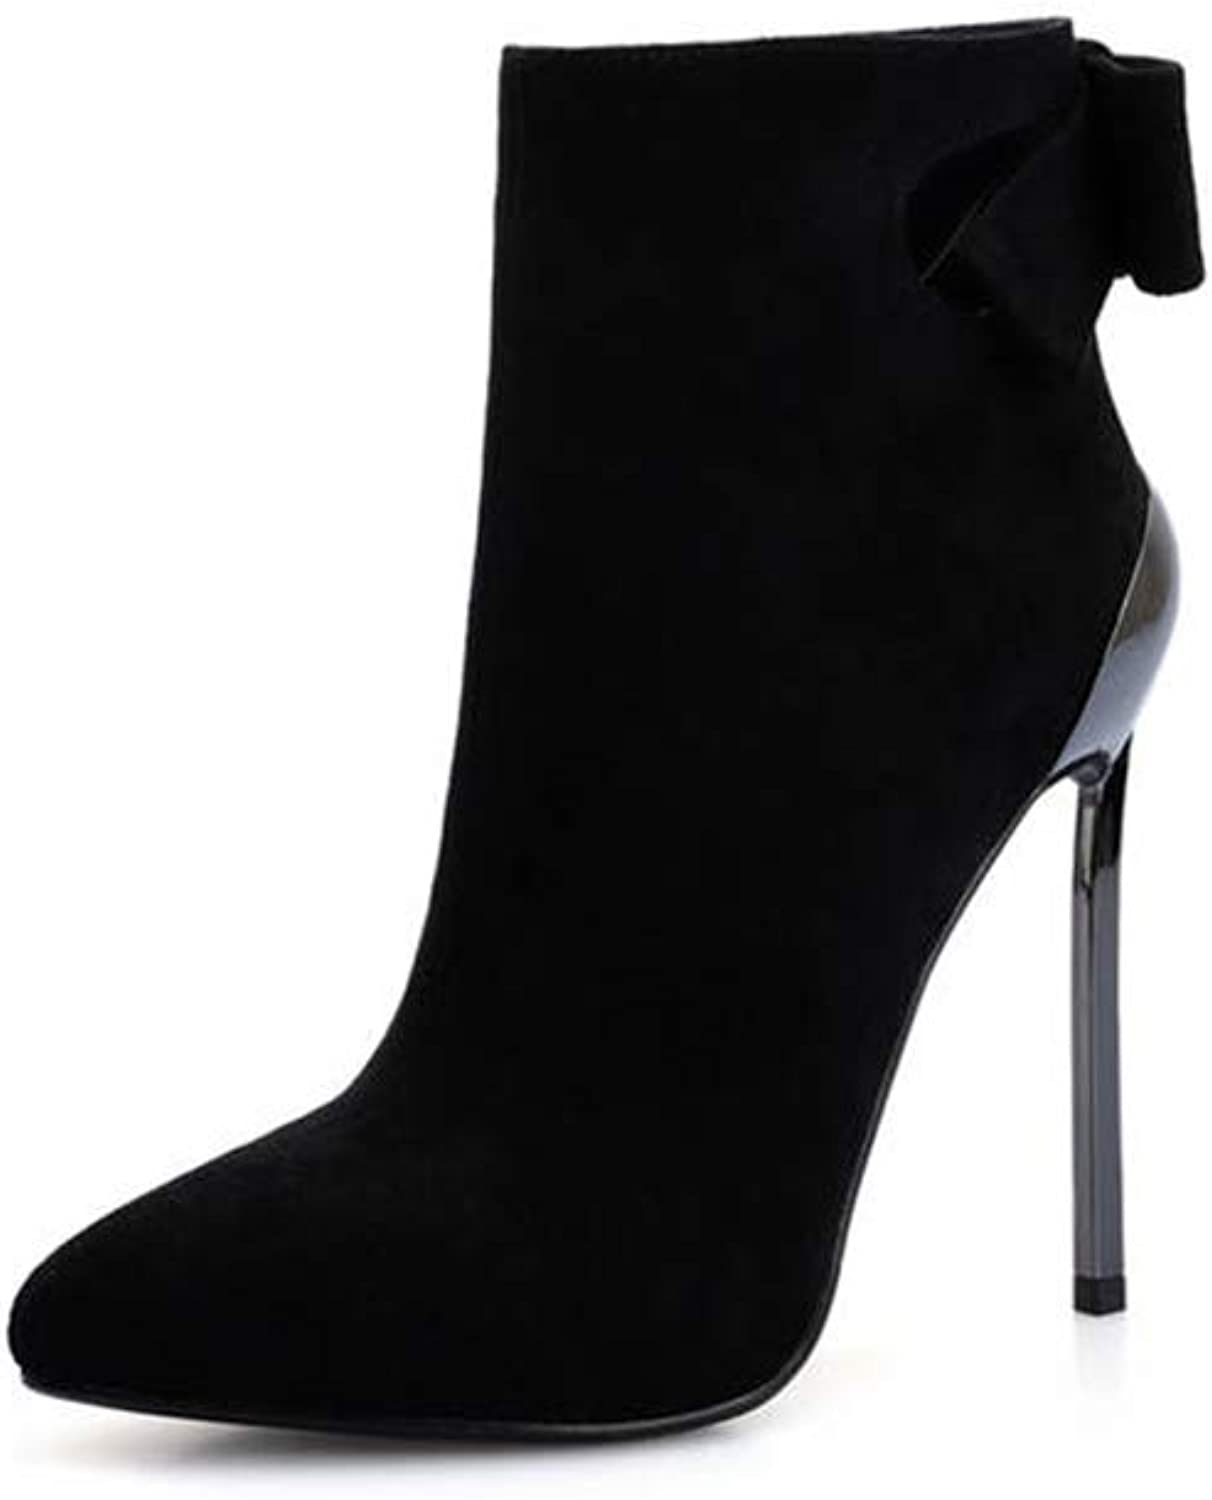 SANOMY Suede Stiletto Heel Ankle Boots for Women Sexy Pointed Toe High Heel Booties Elegant Wedding Party Chelsea Boots